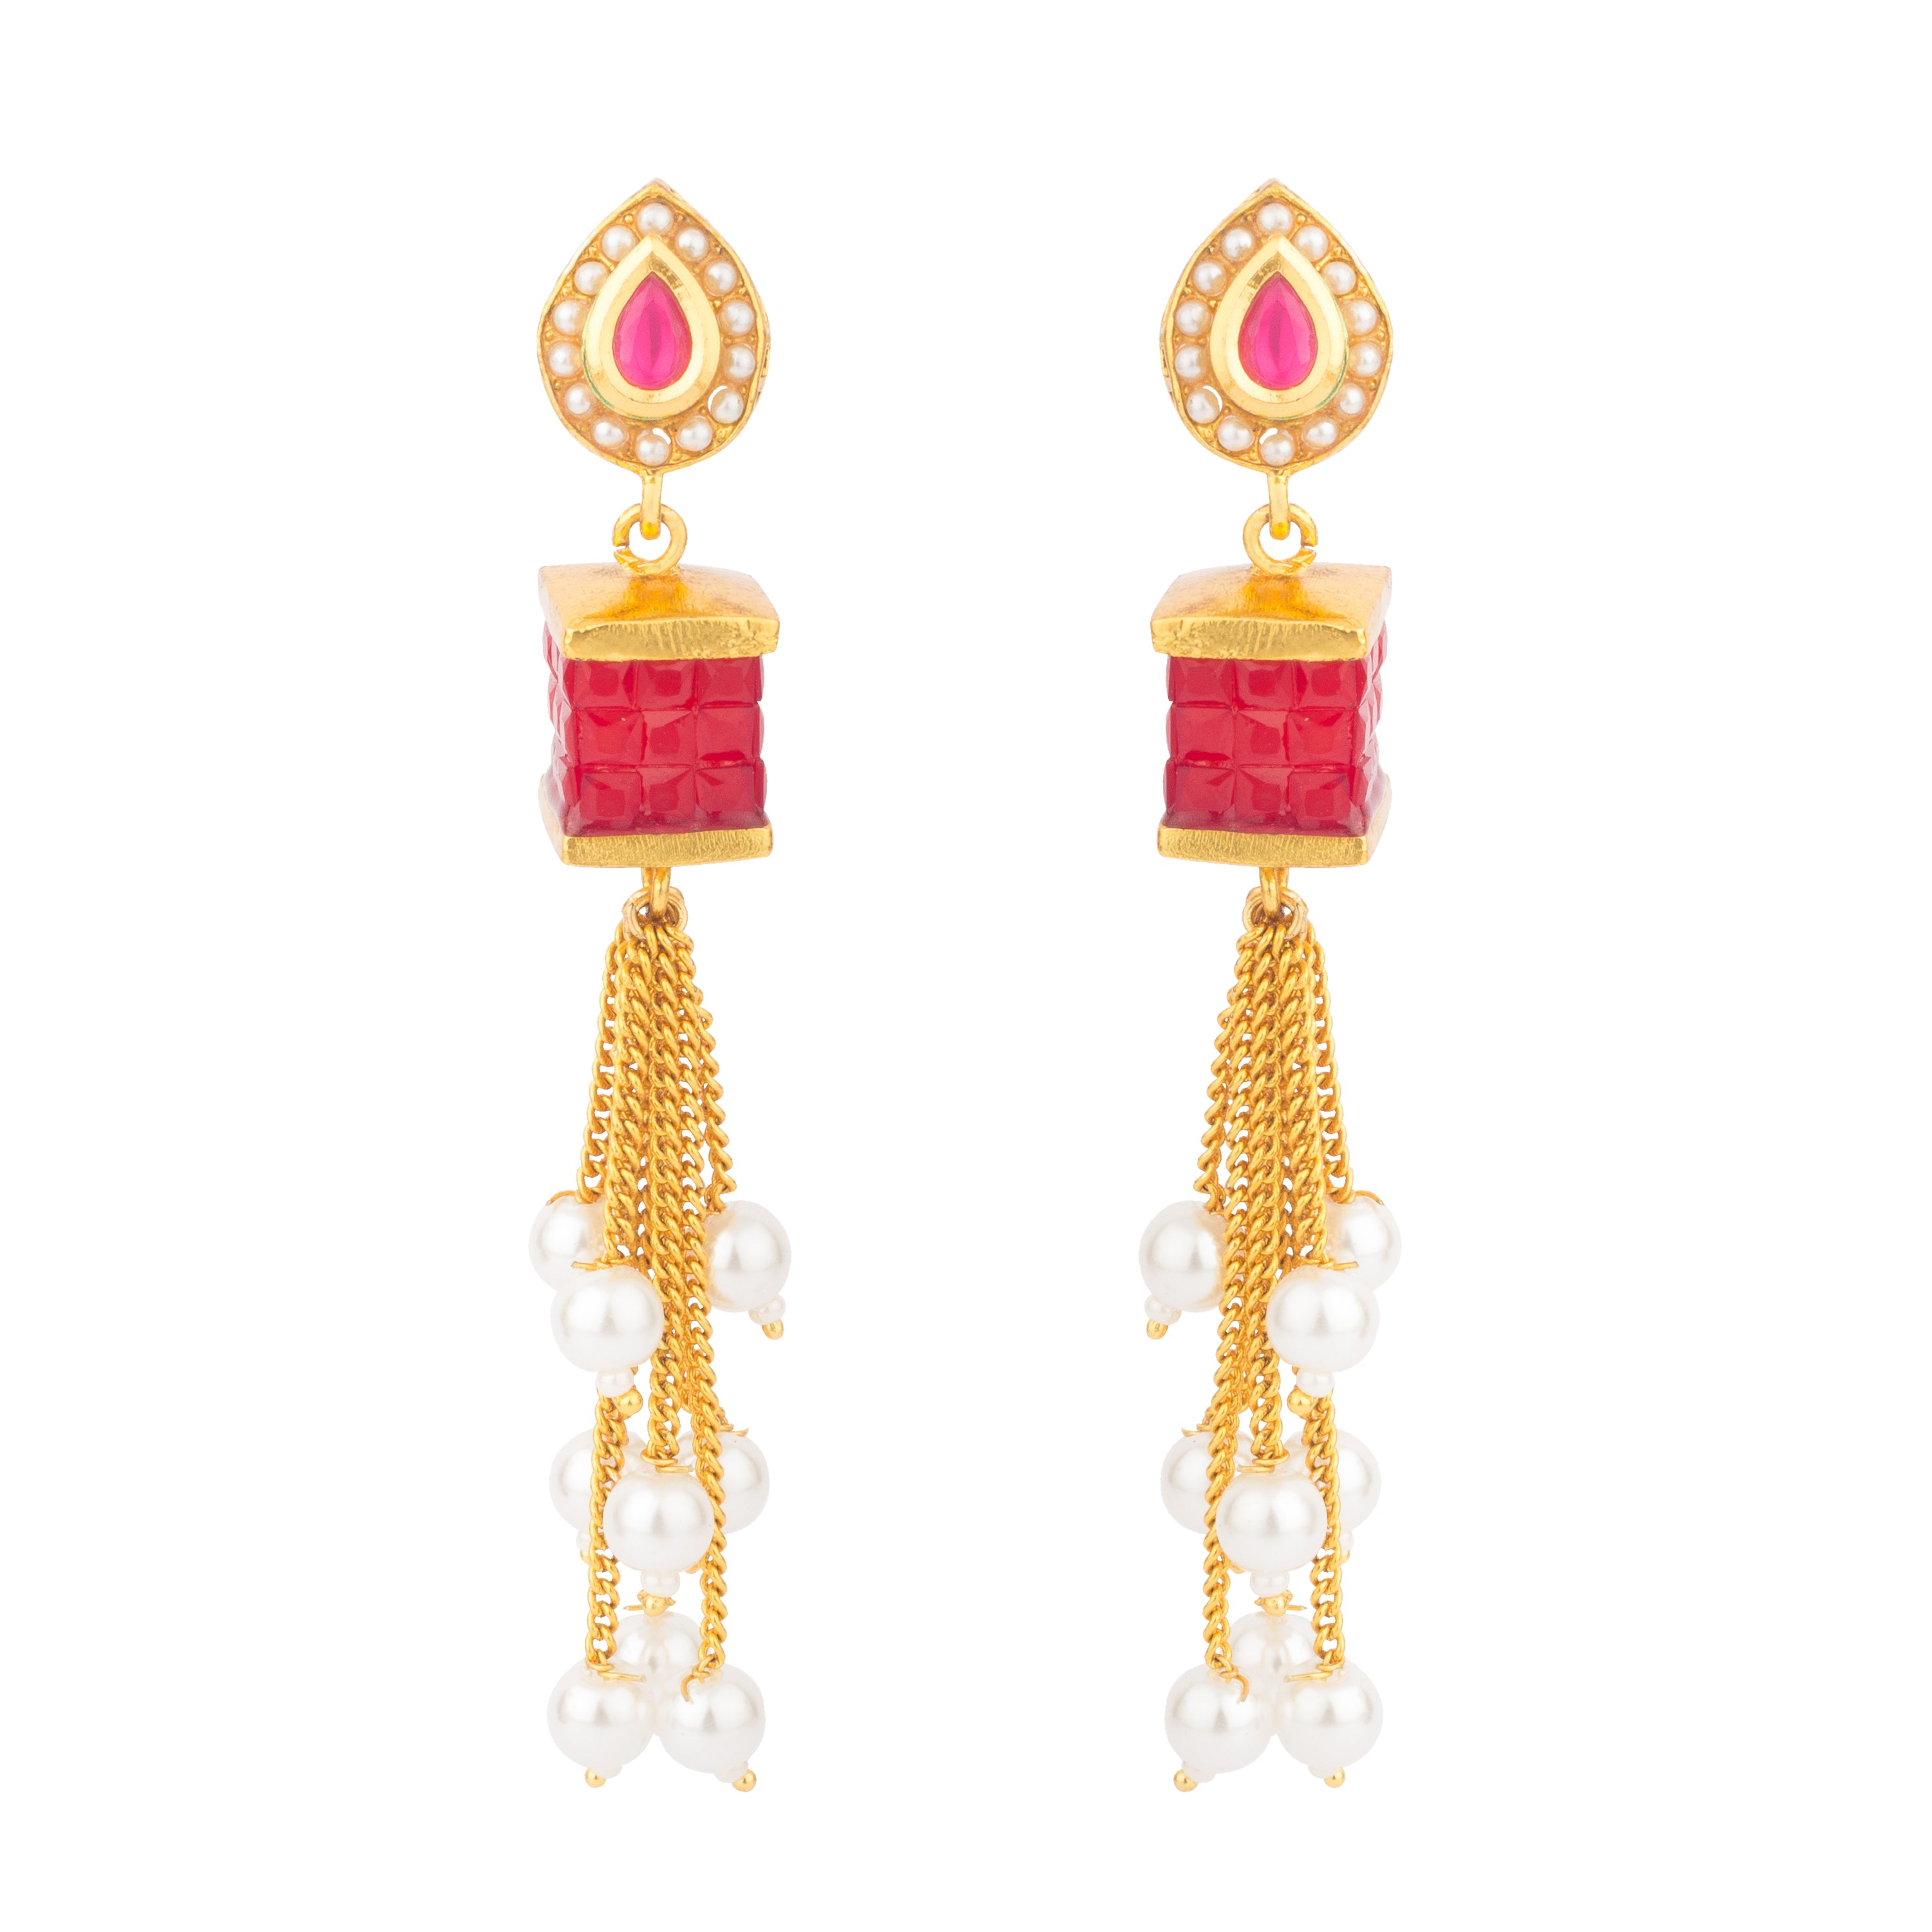 Pink box shaped earring